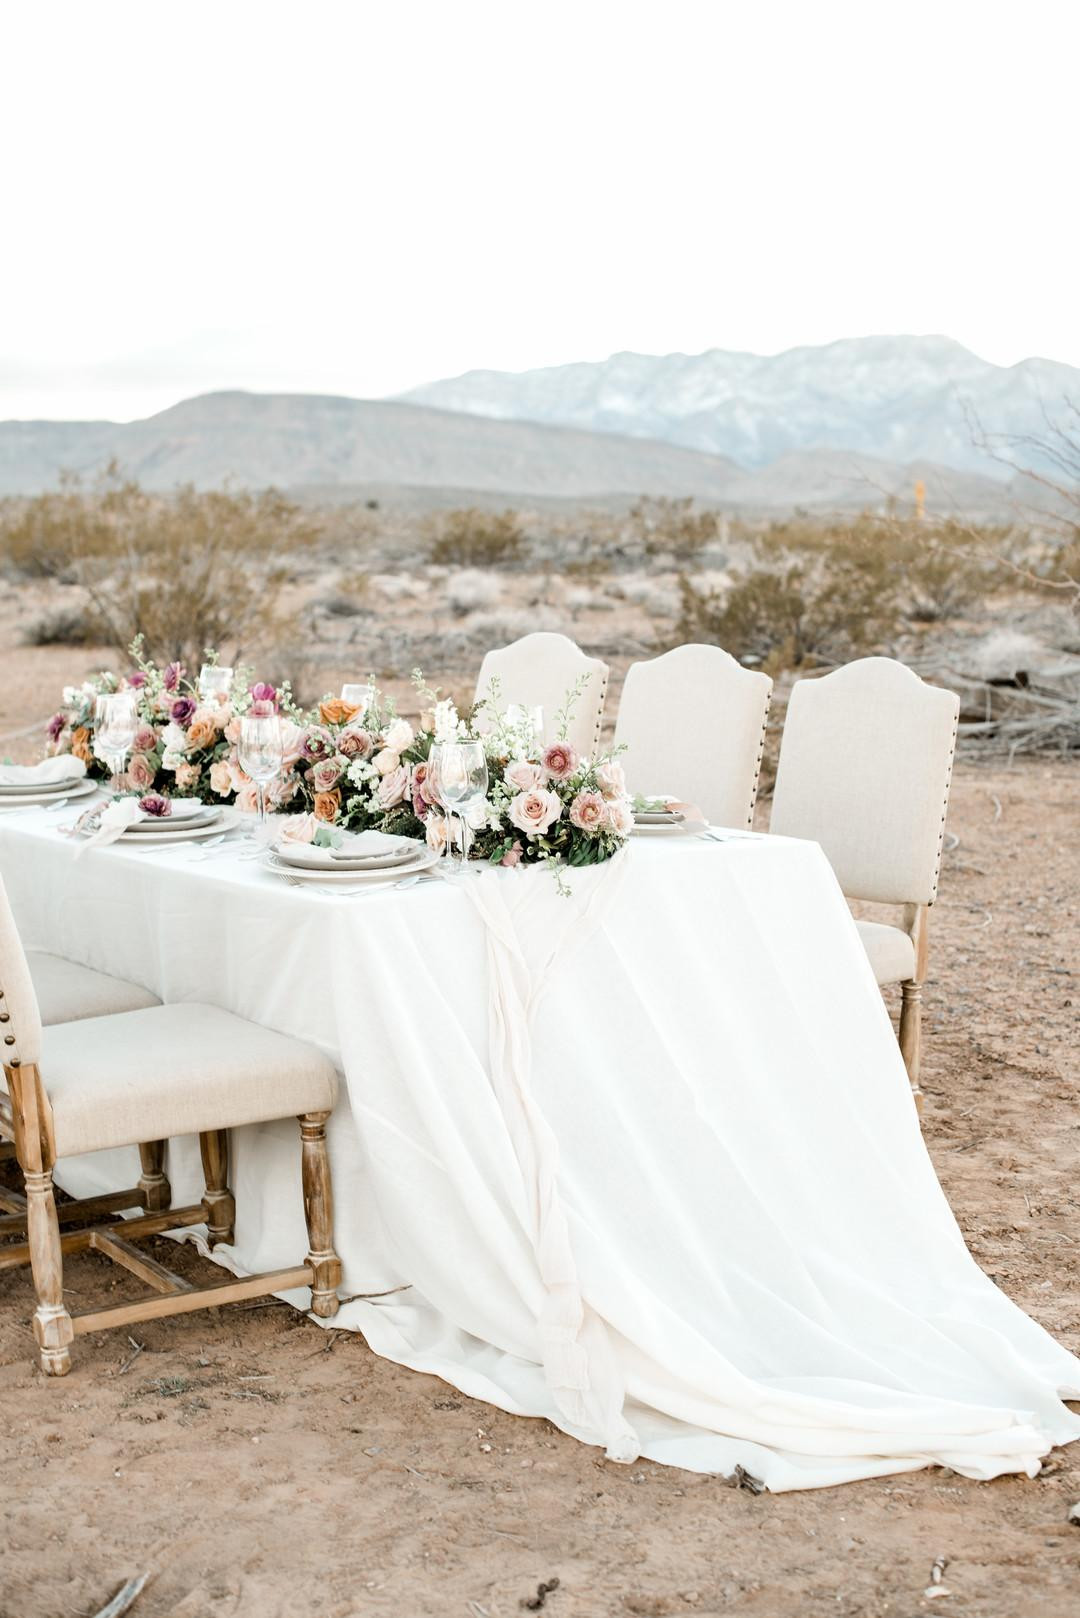 Table Garden in shades of mauve, dusty rose, blush, and toffee. Photo: Elizabeth Le